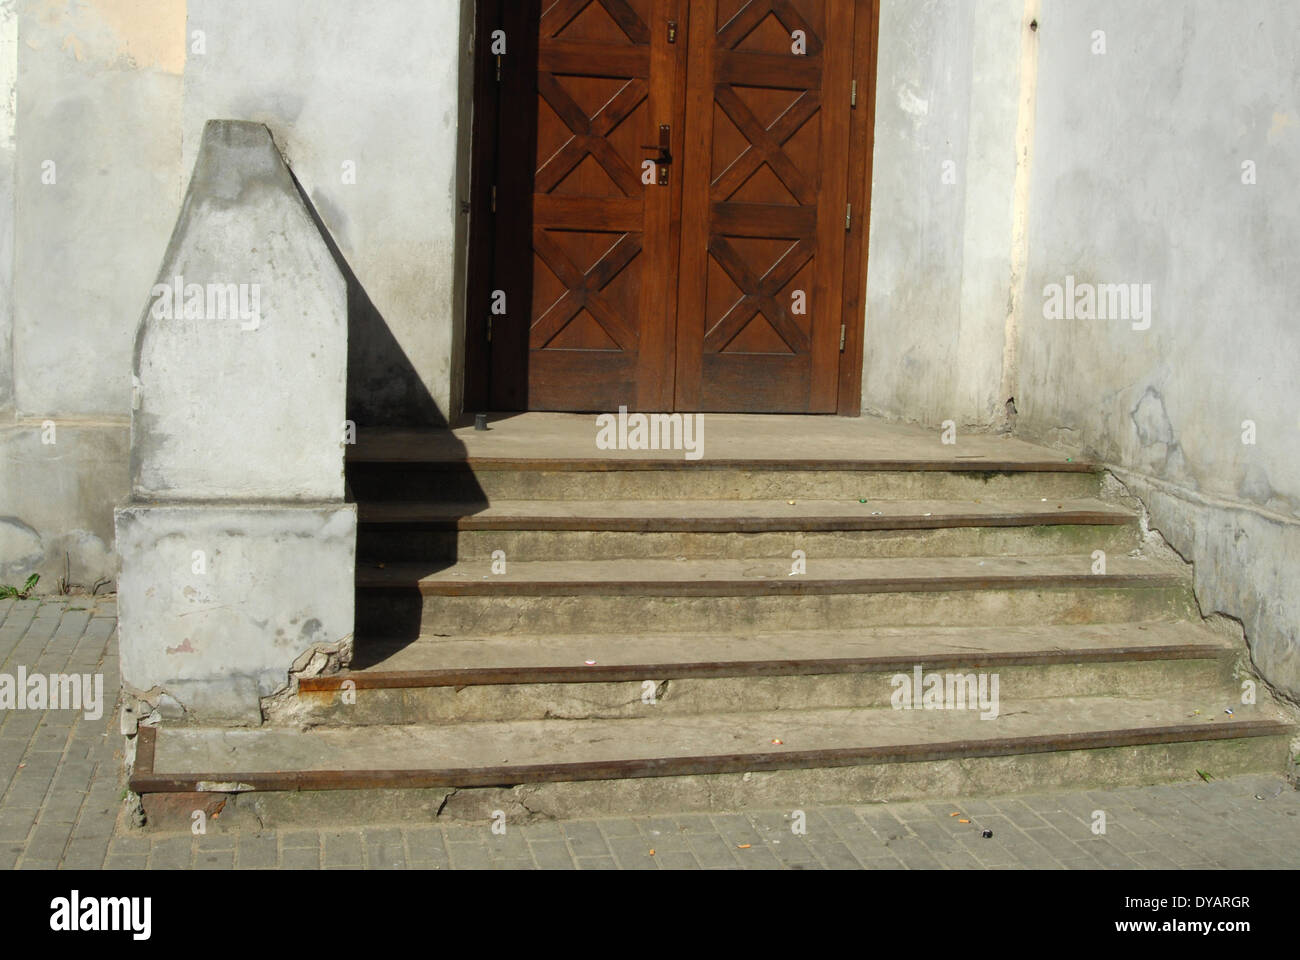 fragment of the old building with stairs - Stock Image